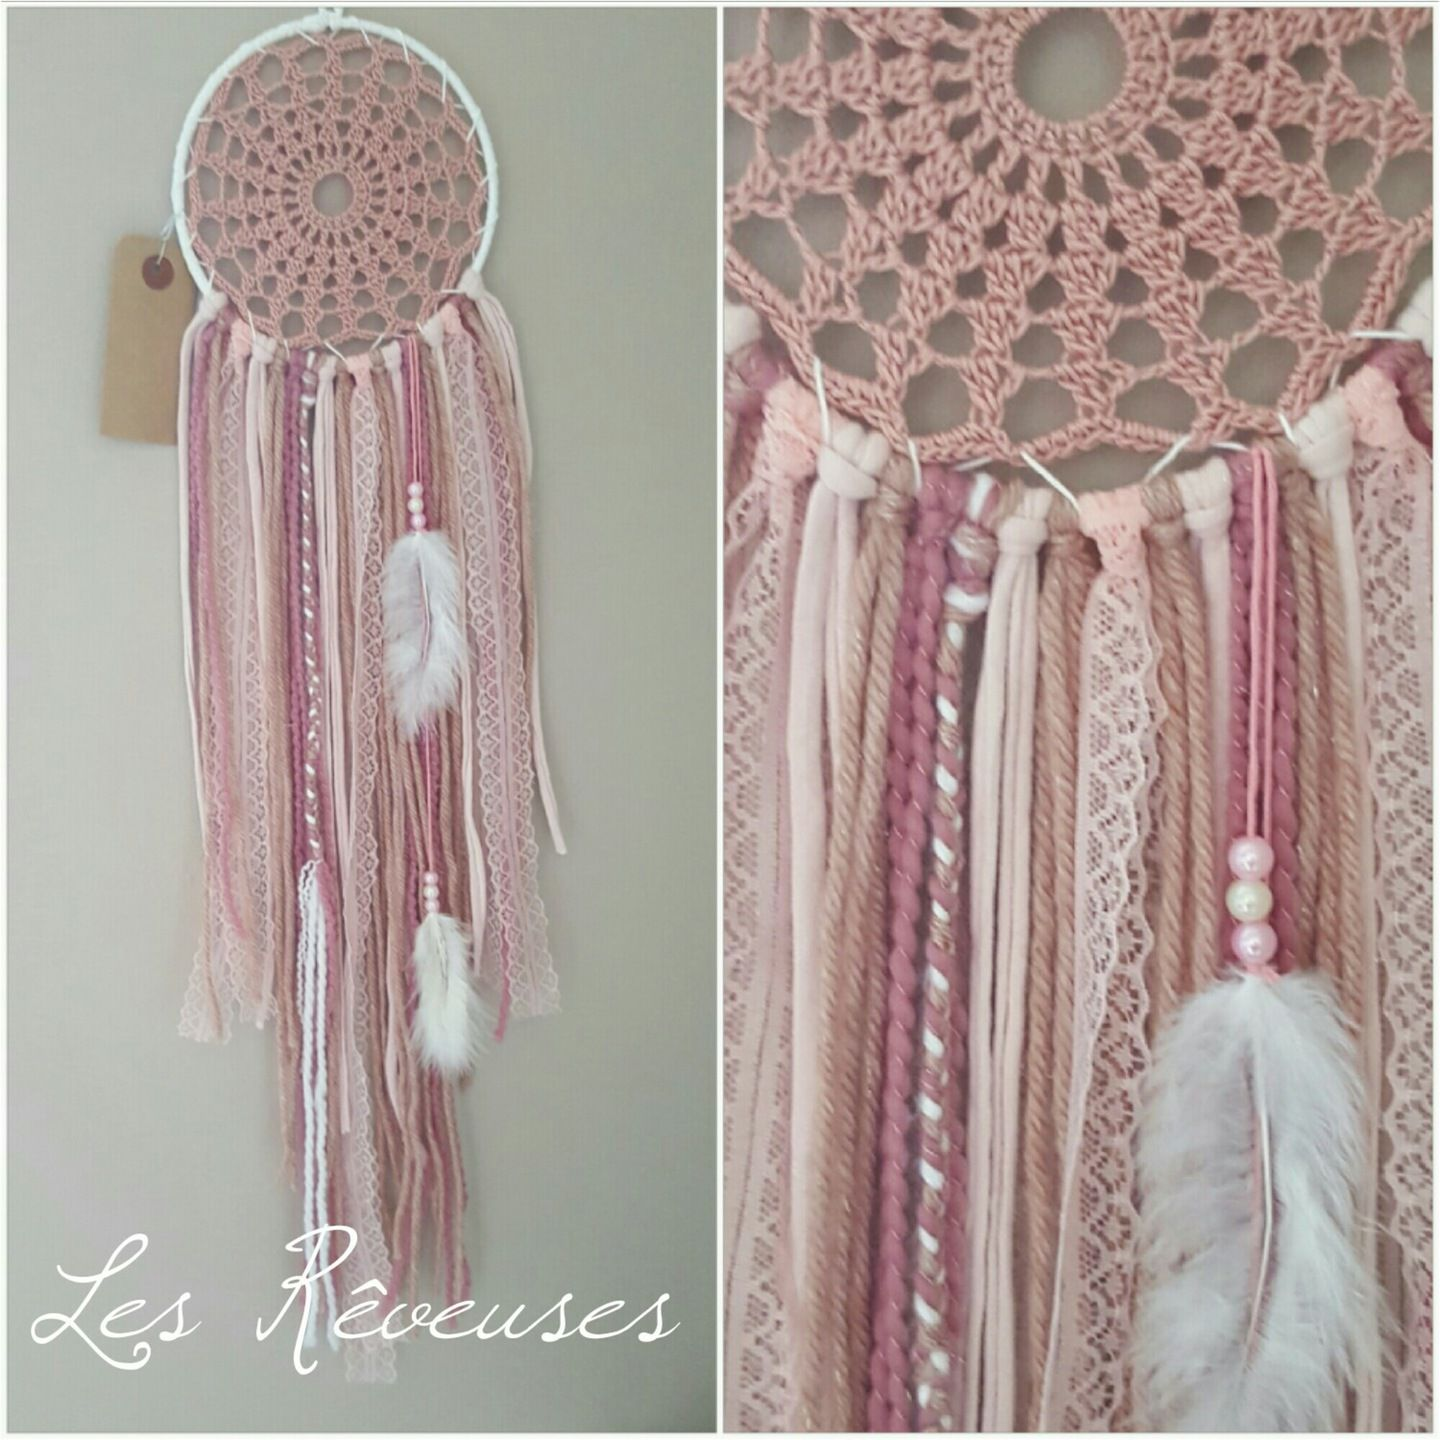 attrape r ve les r veuses personnalisable blanc et rose dream catcher dreamcatchers. Black Bedroom Furniture Sets. Home Design Ideas